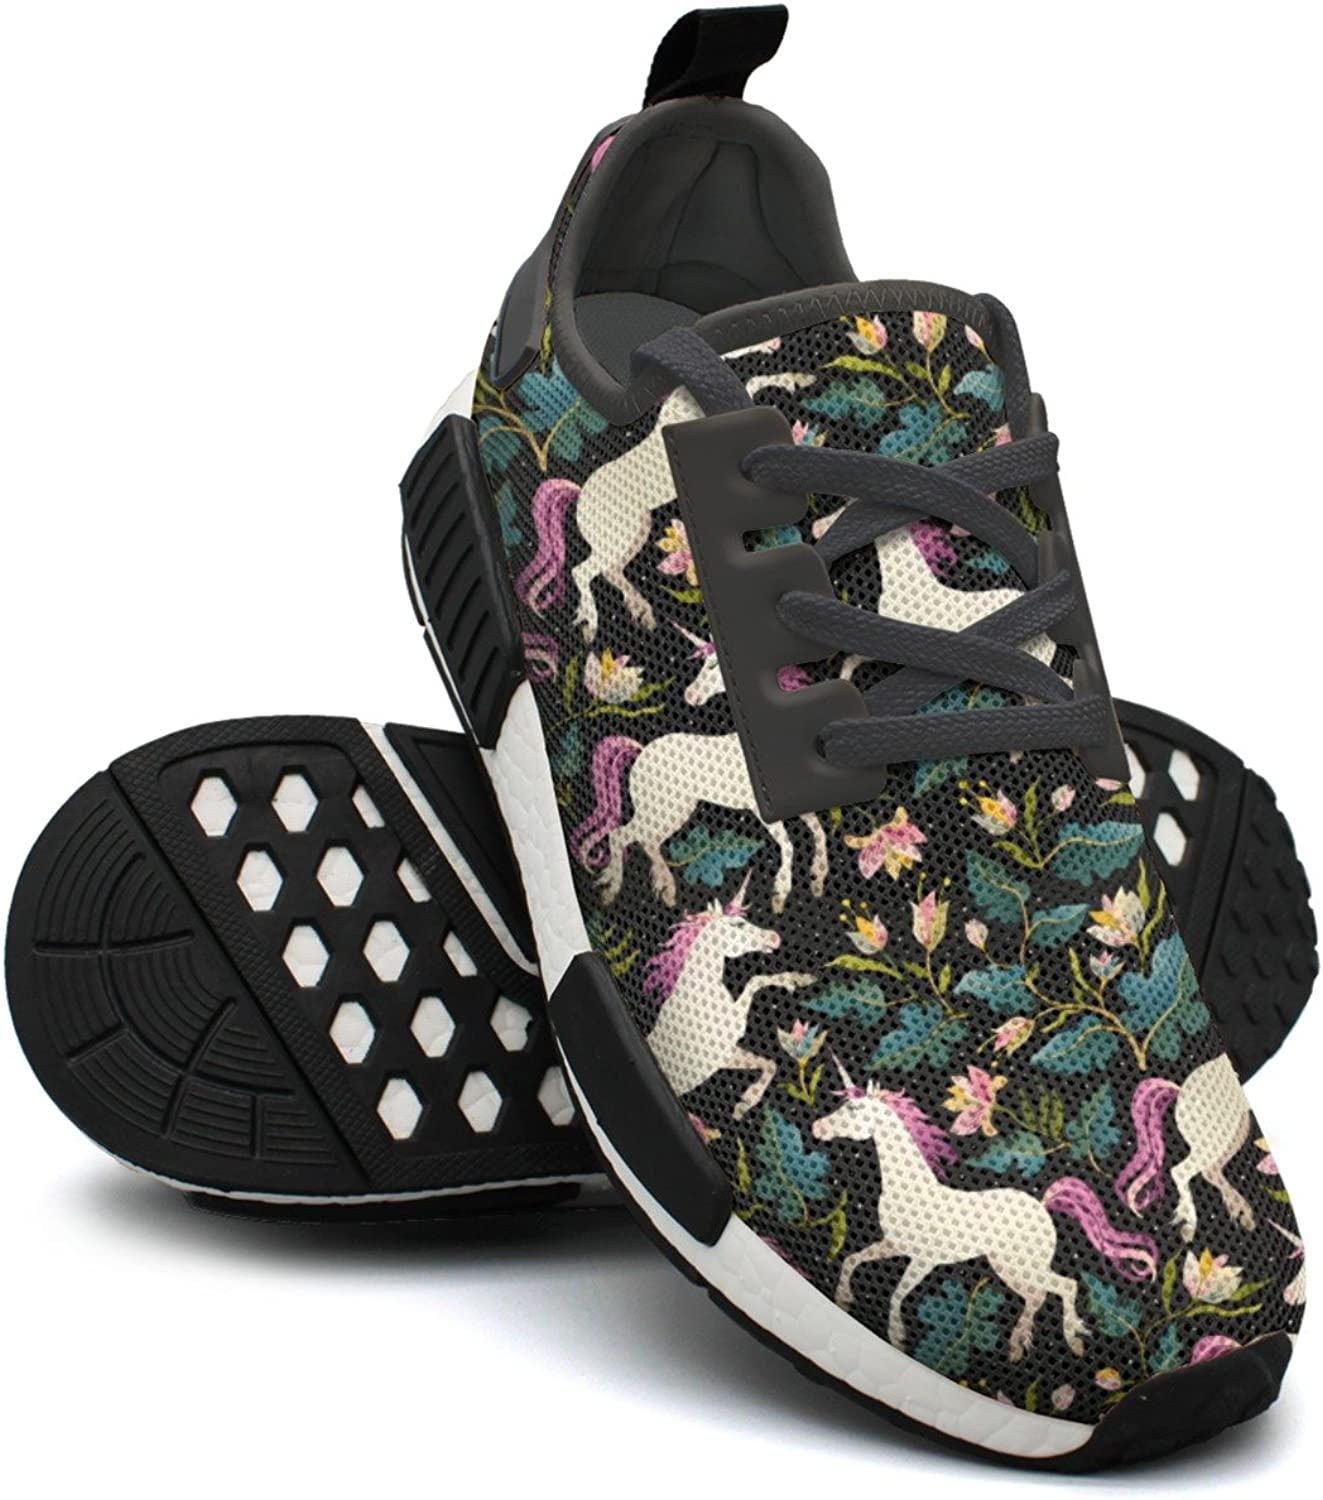 WESER Black Vintage Pink Mama Magic Unicorn Casual Sport Printed Lace-up Running shoes NMD